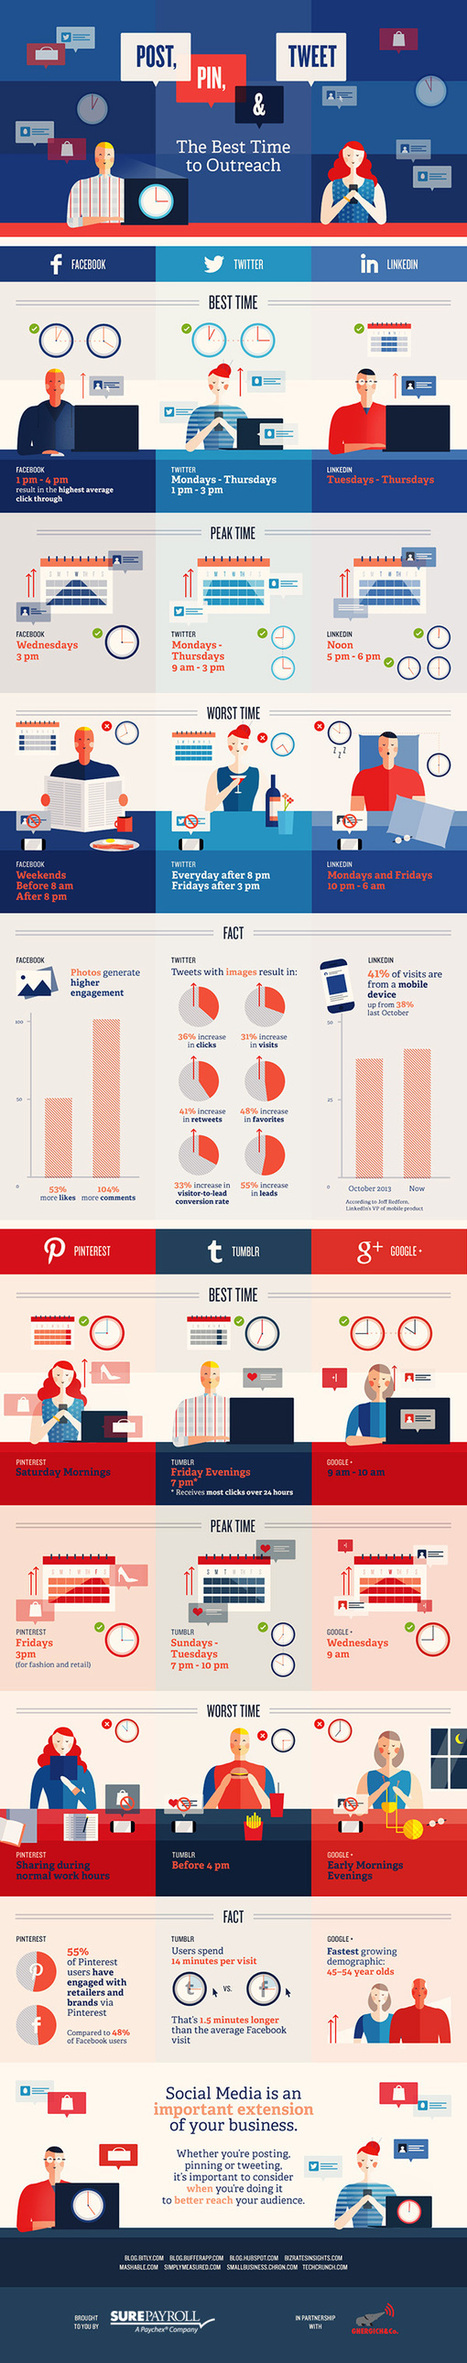 The Best Times to Post, Pin and Tweet [Infographic] - SocialTimes | Marketing | Social Media | Scoop.it